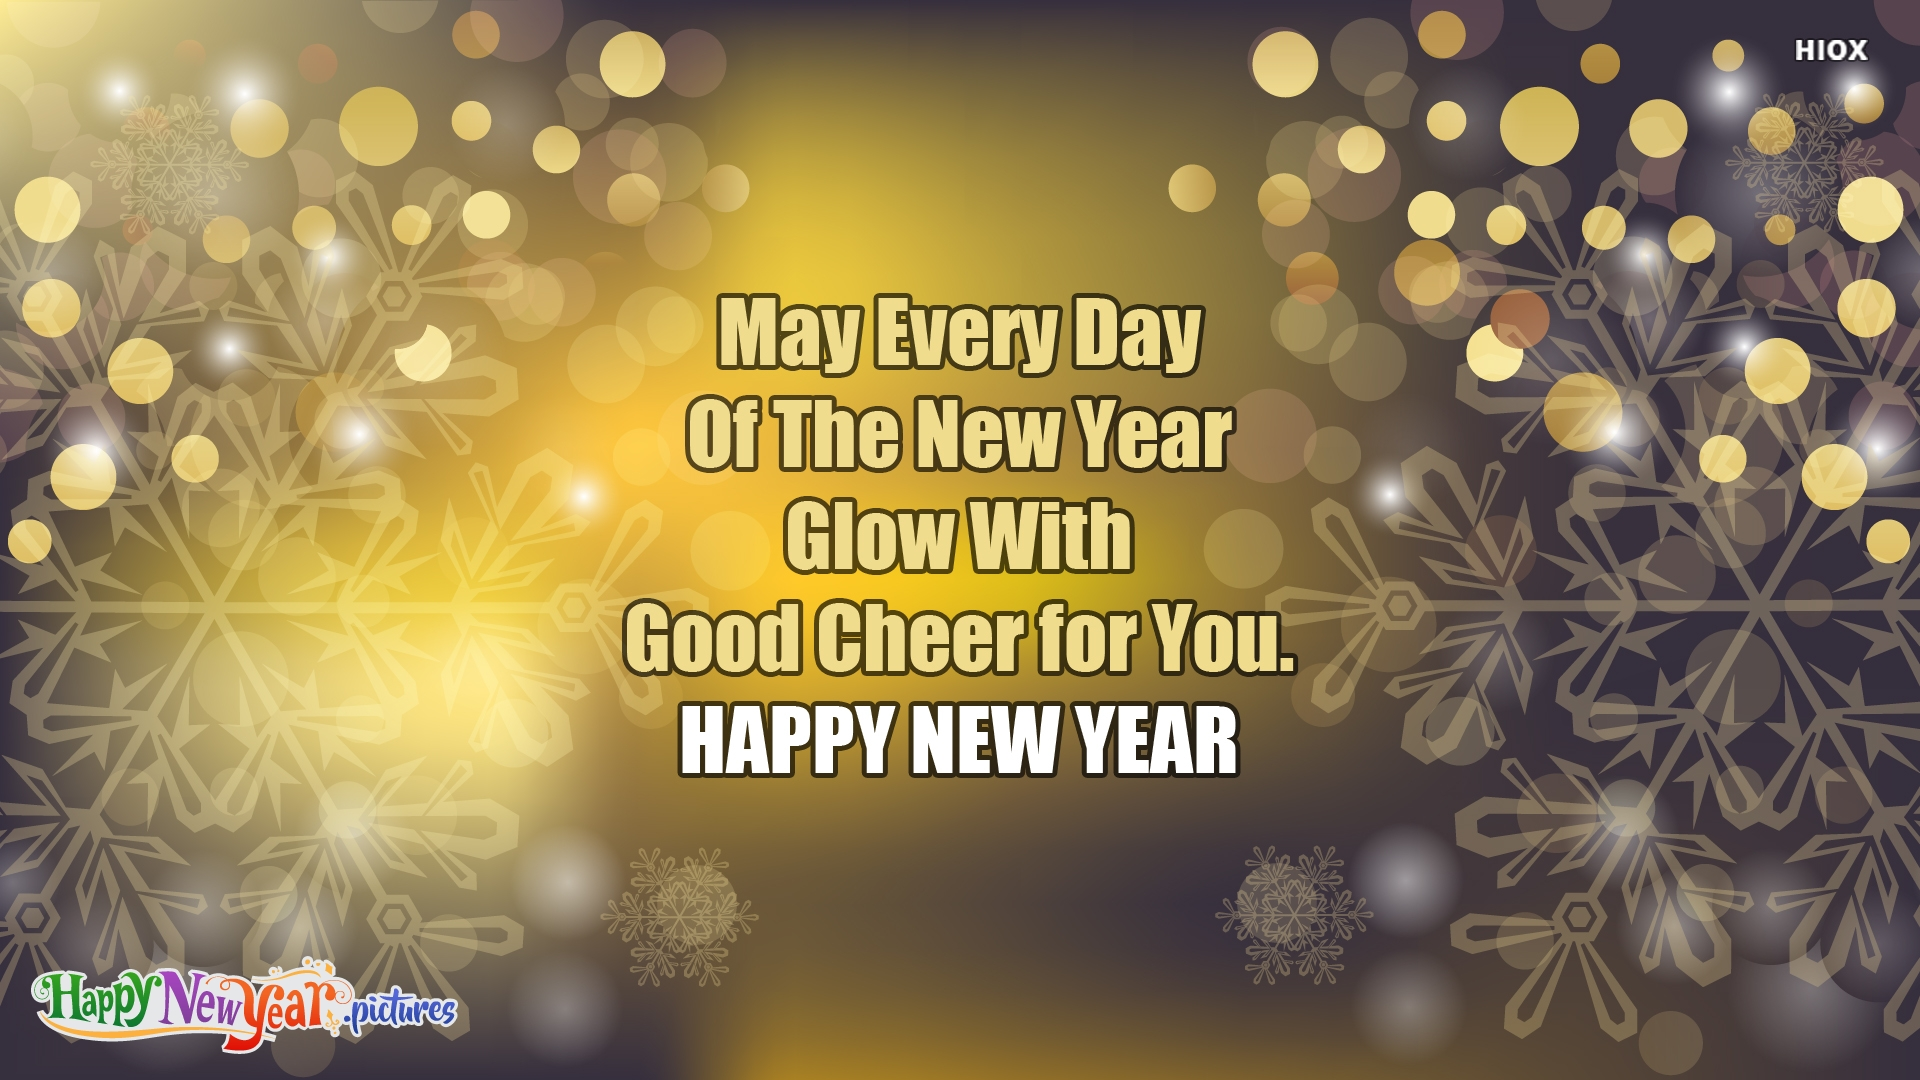 May Every Day Of The New Year Glow With Good Cheer For You.